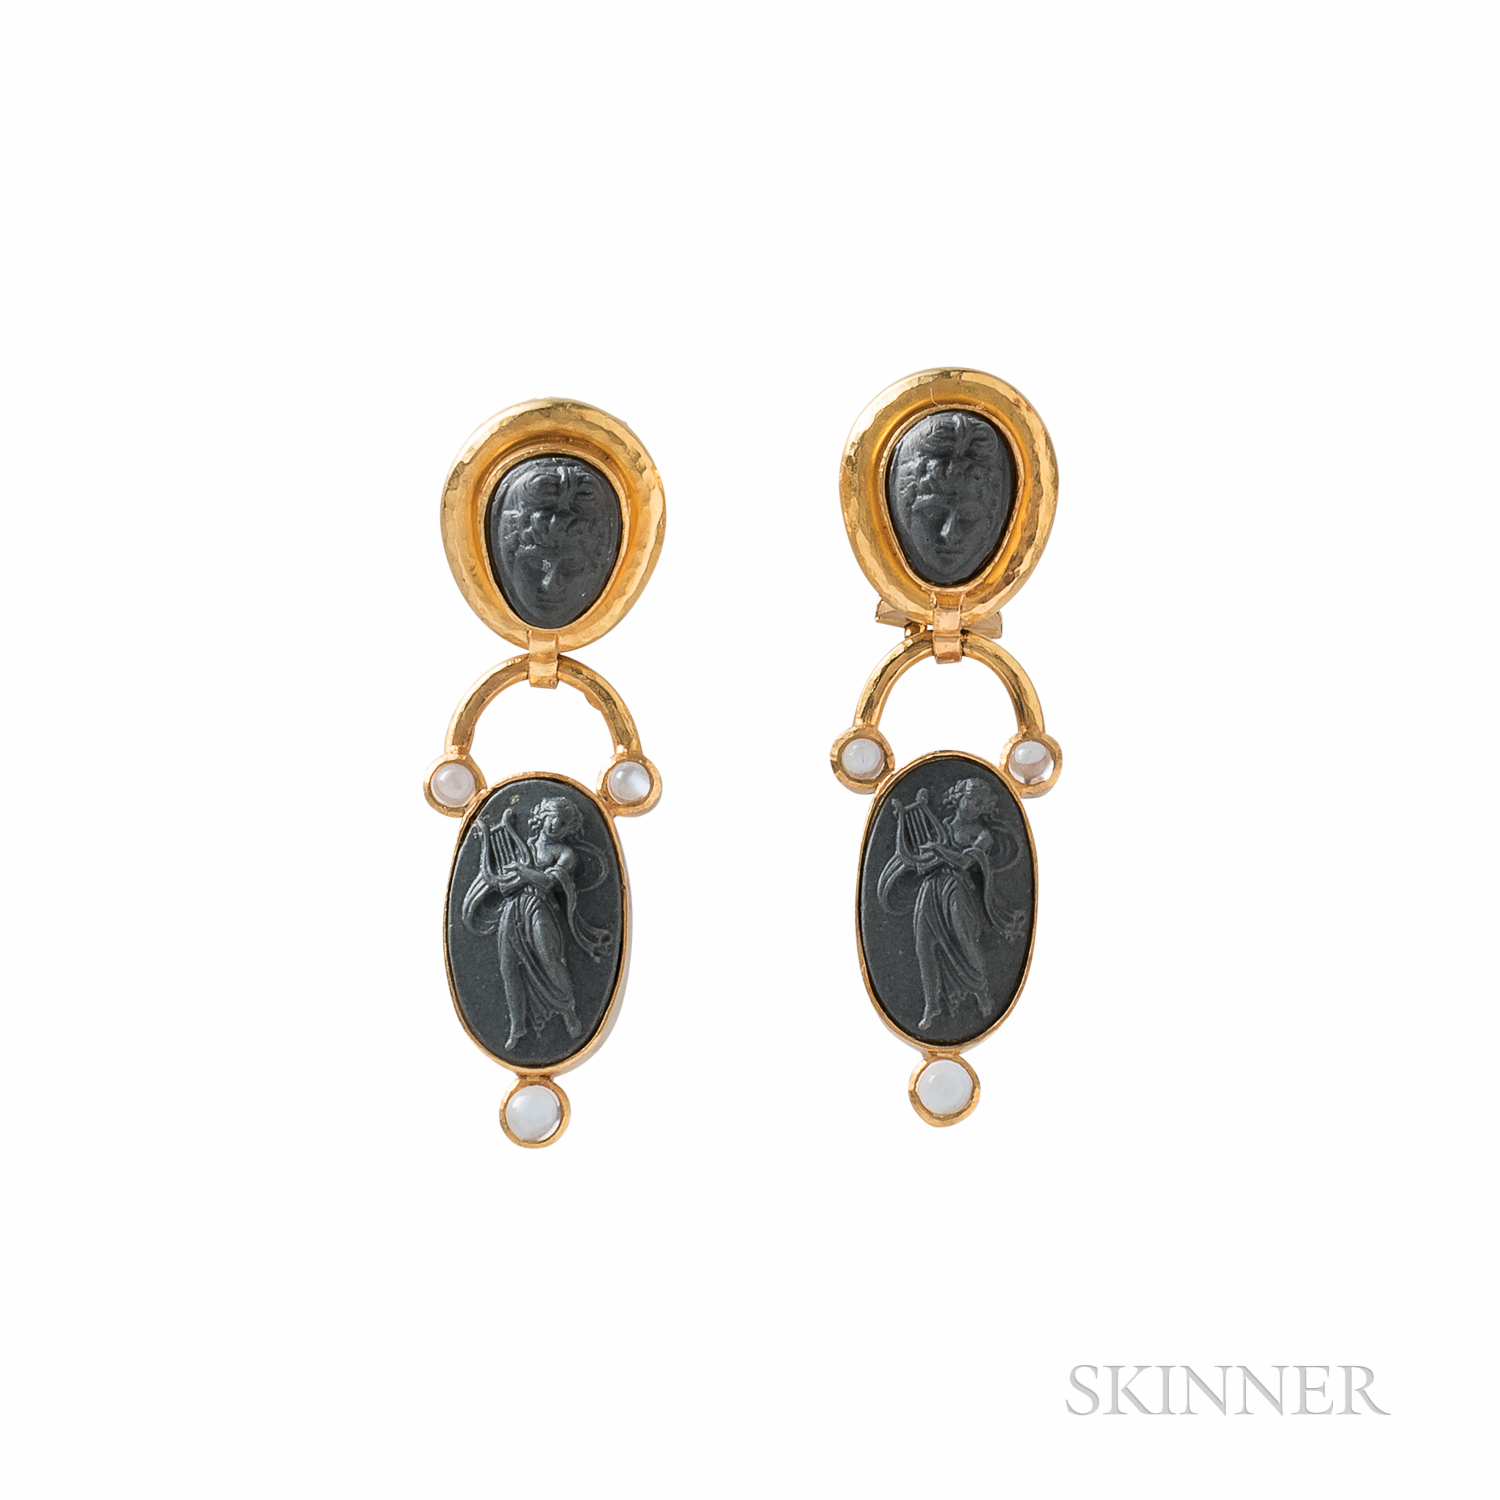 Elizabeth Locke 18kt Gold, Lava Cameo, and Moonstone Earrings